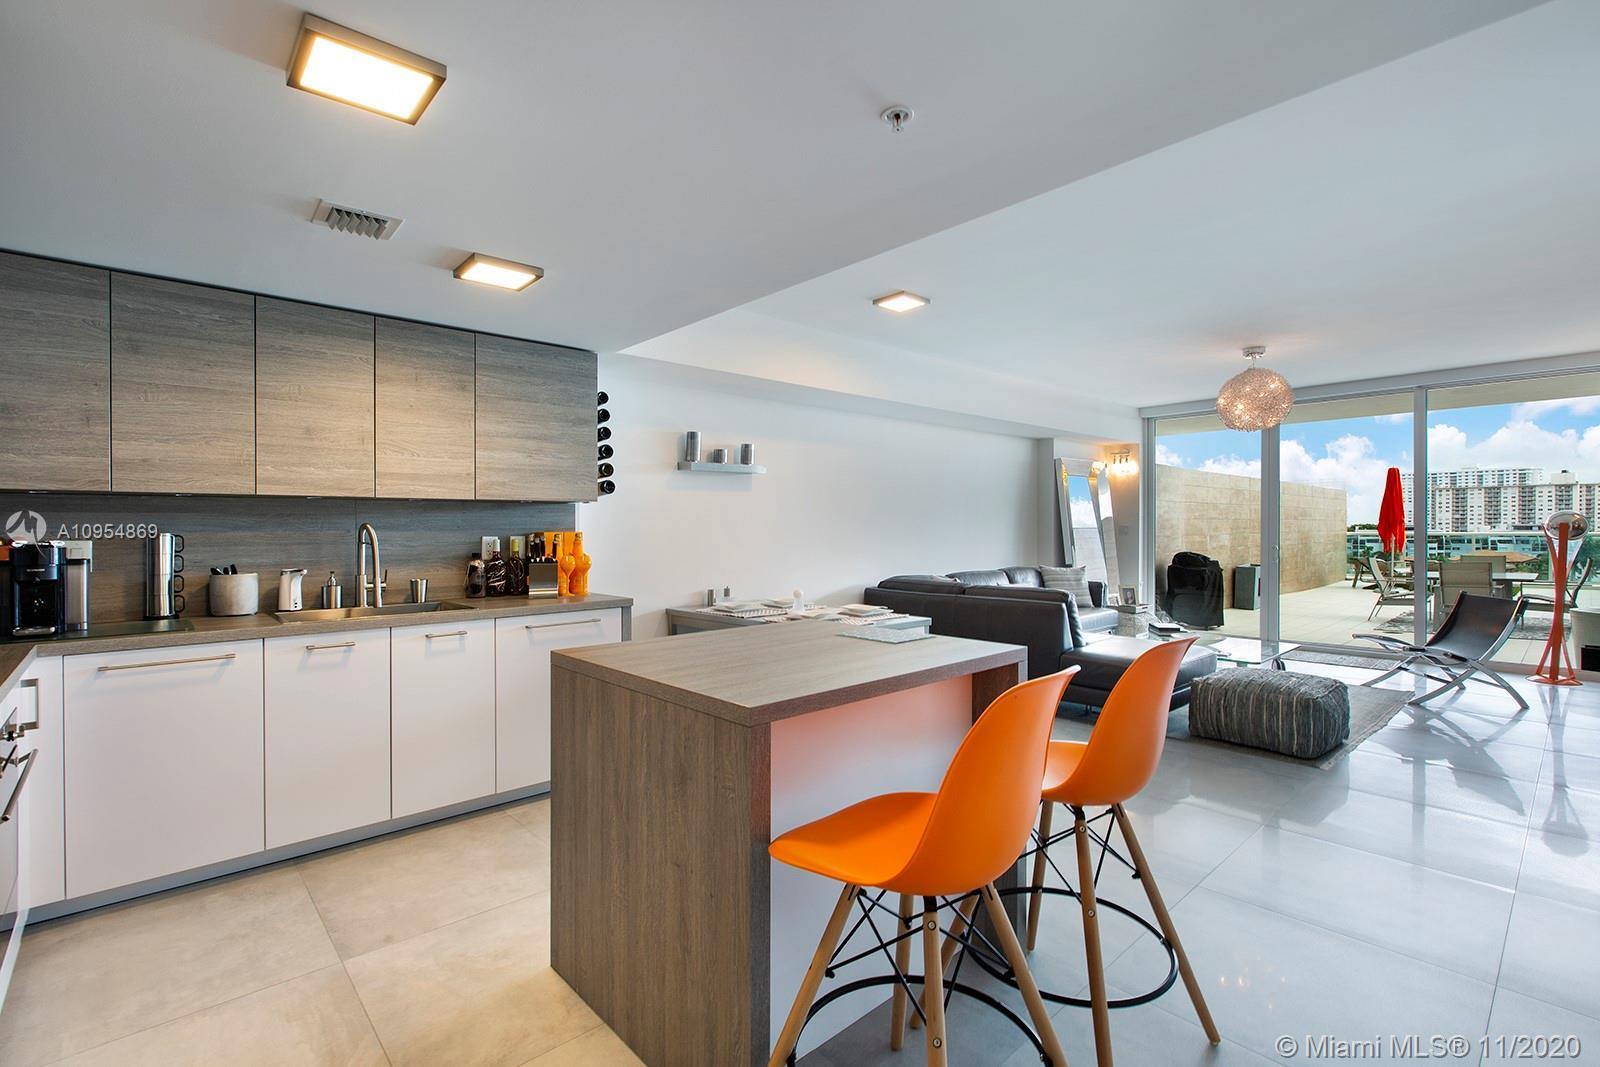 Immaculately maintained, impeccably designed residence in the heart of Sunny Isles Beach. Take in th